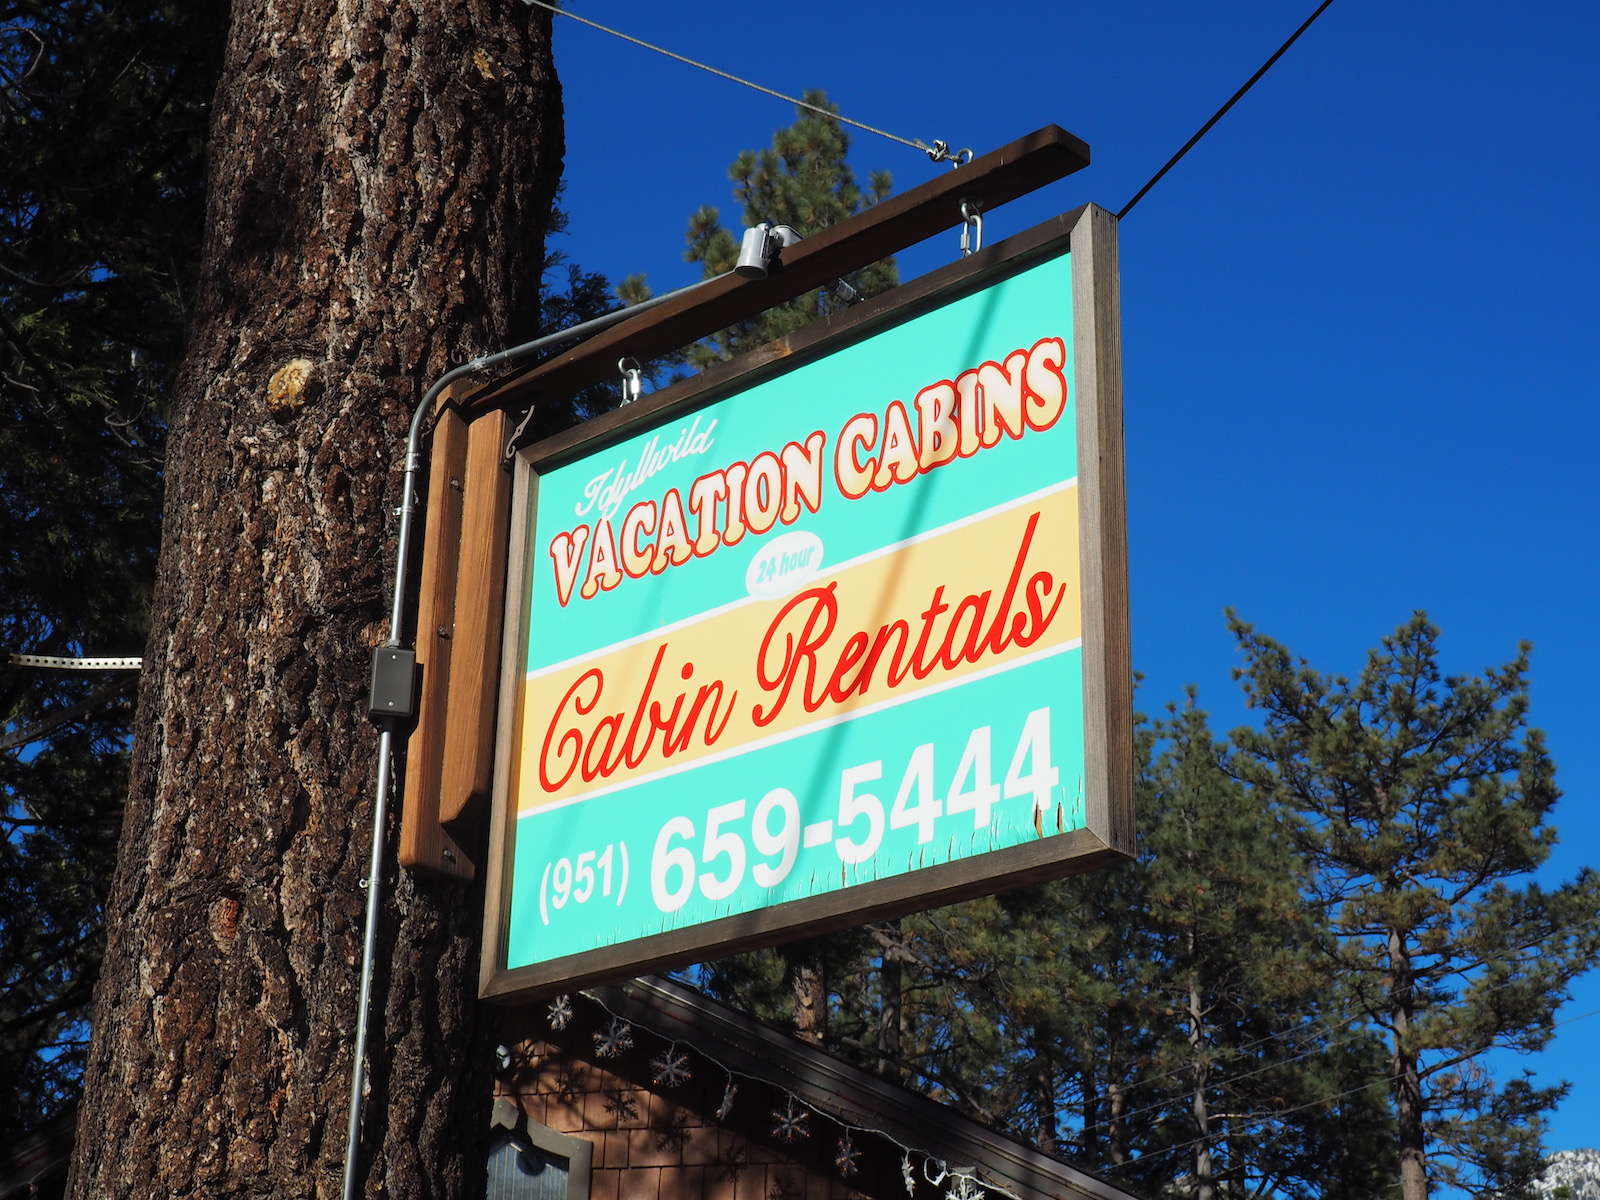 Sign from the Idyllwild Vacation Cabins storefront in the town of Idyllwild, CA.